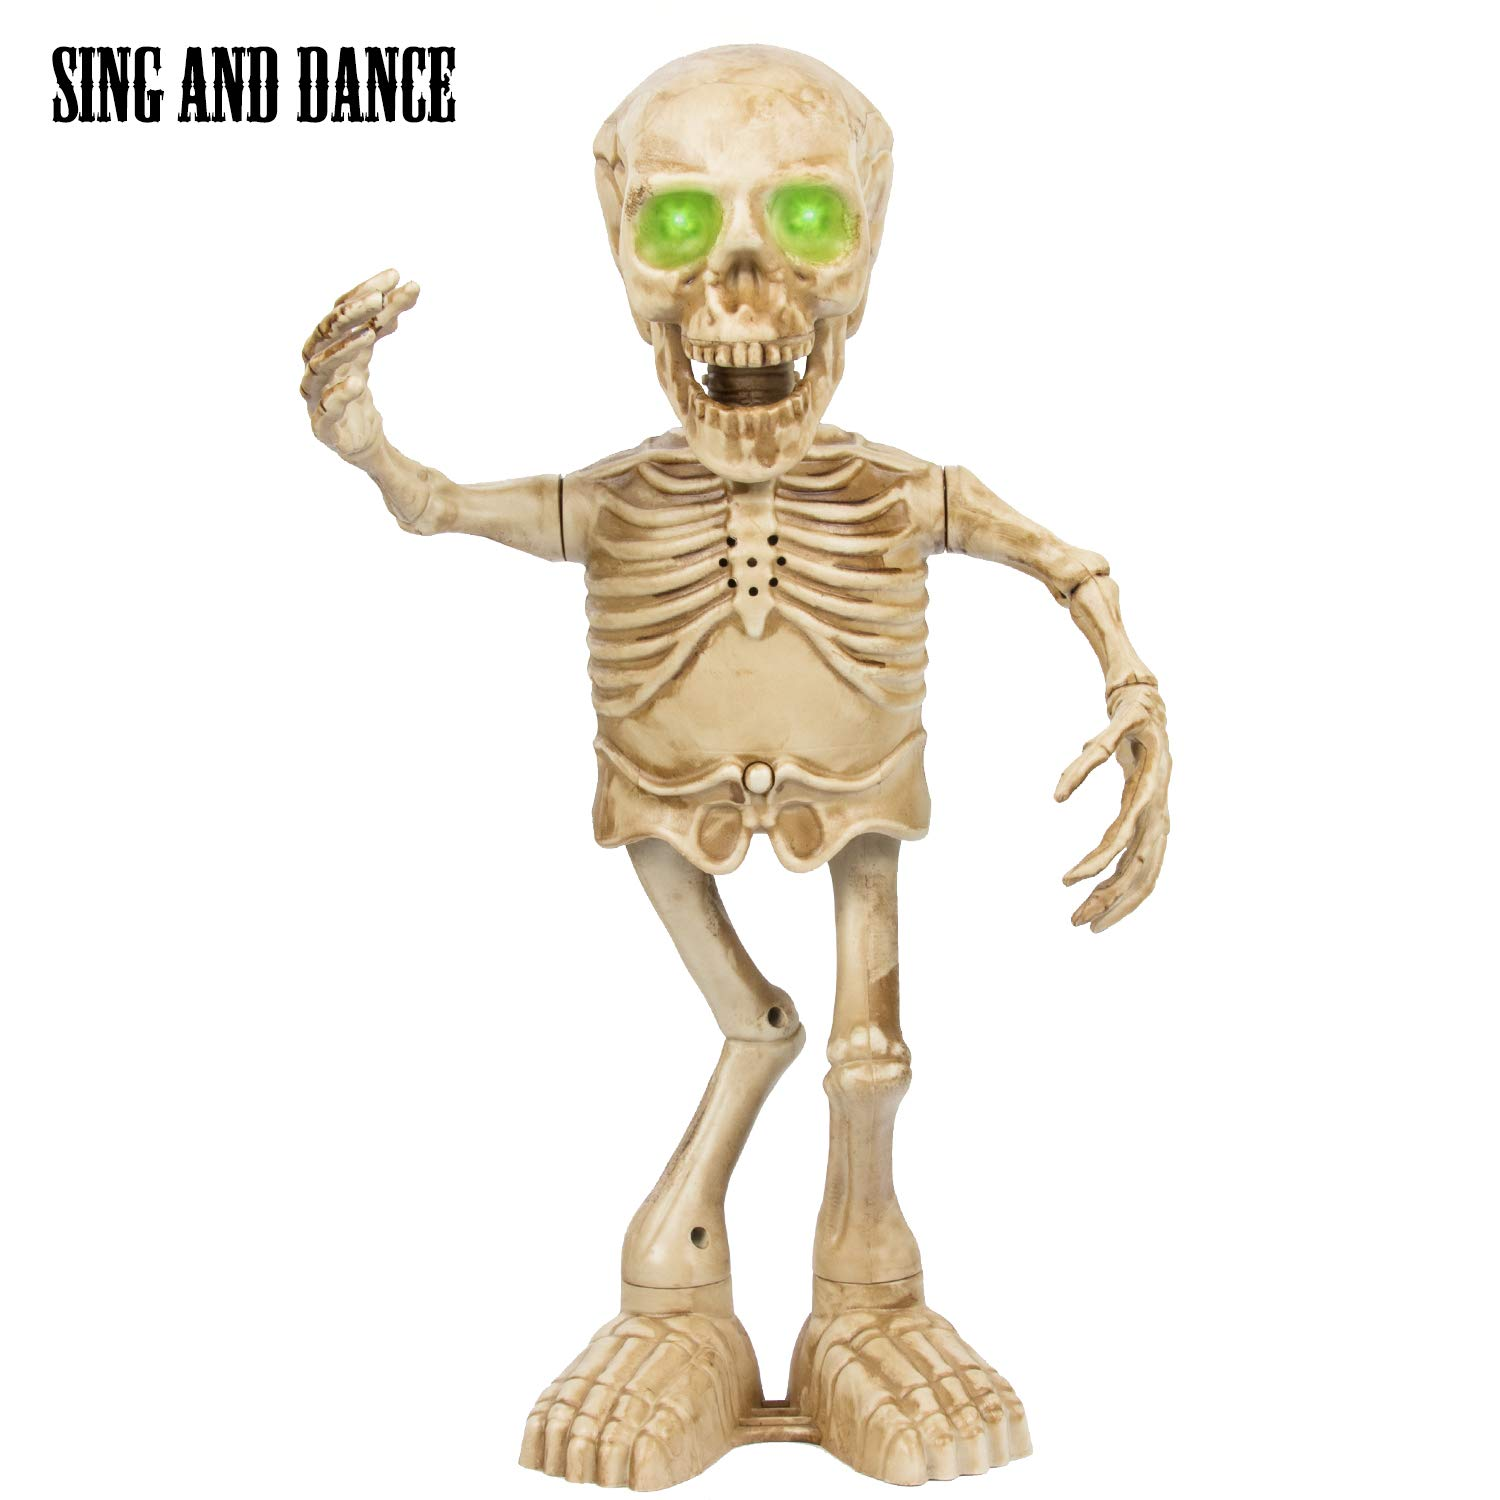 ITART Halloween Skeleton Decoration Dancing Singing 16-Inch Skeleton Prop with LED Eyes Fun Animated Toy Gift for Kids Teens Party by ITART